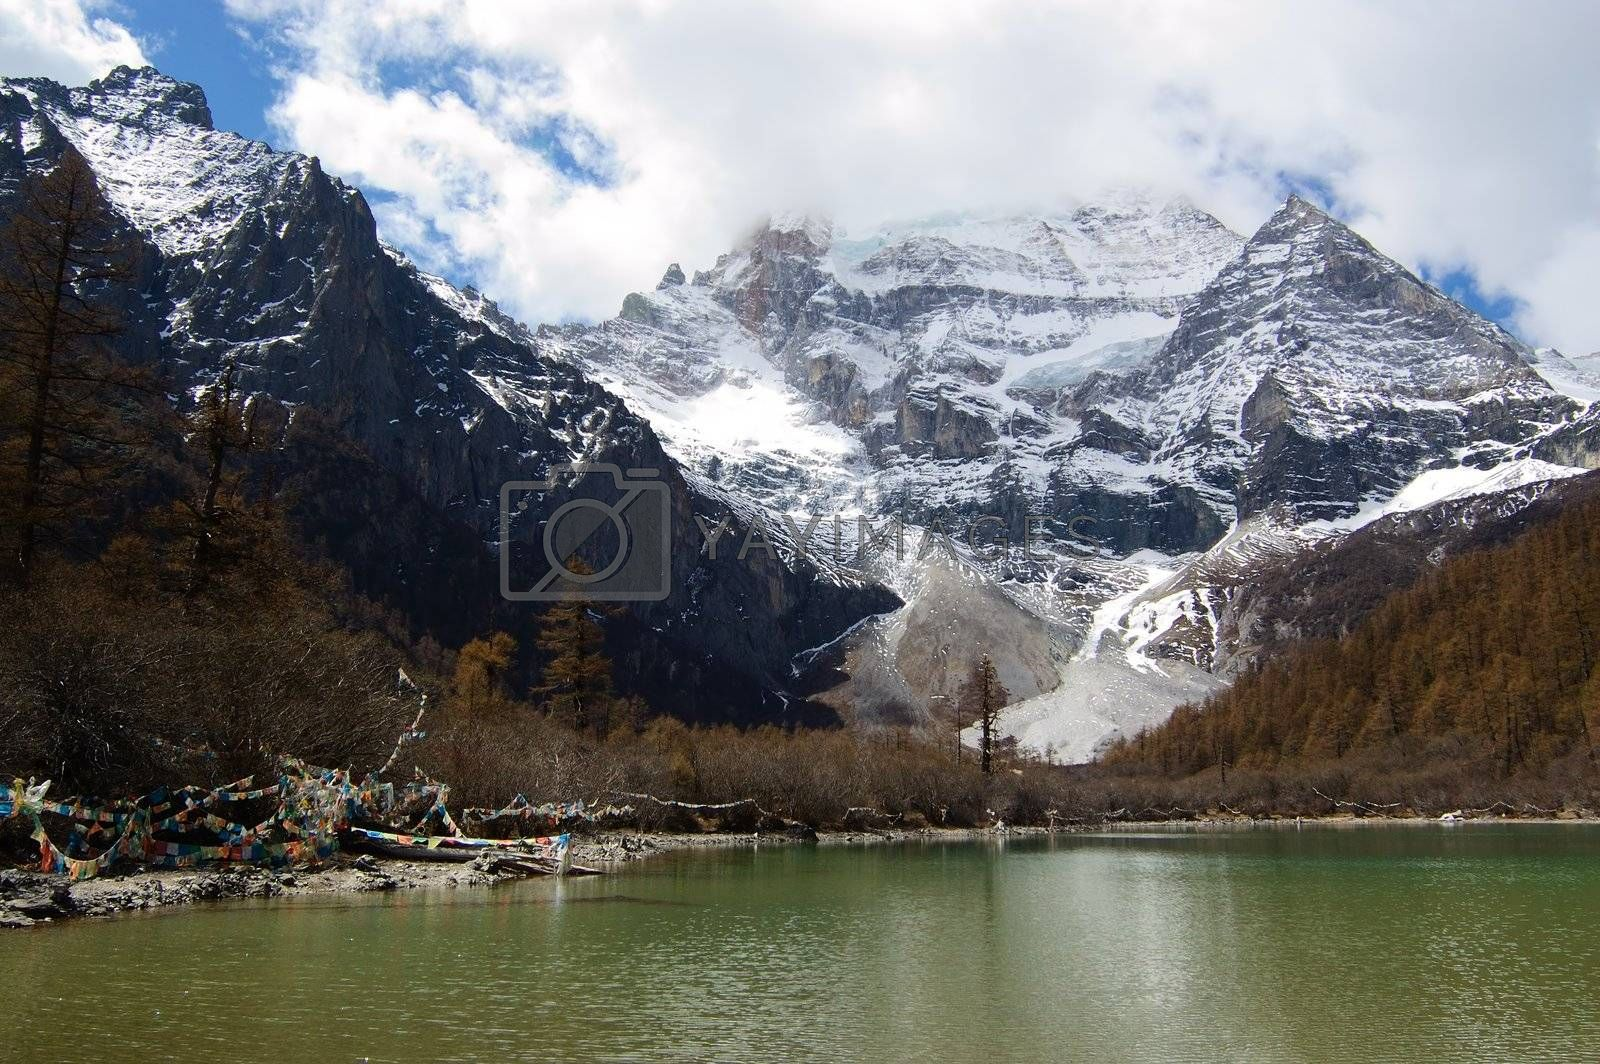 Snow mountain and lake in Daocheng,Sichuan Province, China